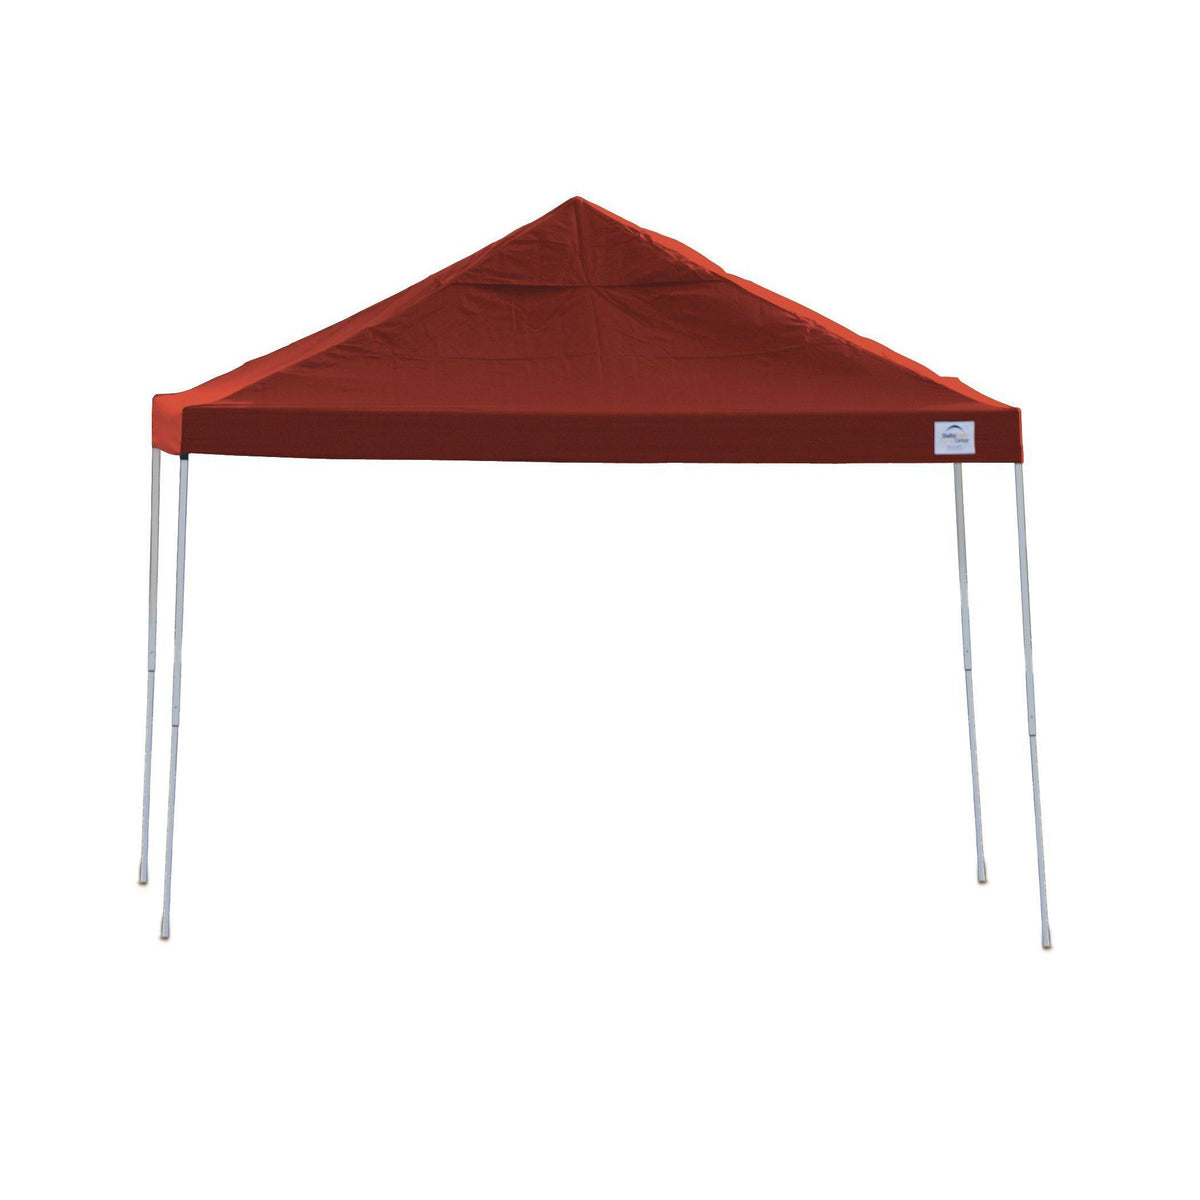 ShelterLogic Pro Series Straight Leg Pop-Up Canopy with Roller Bag, 12 x 12 ft.